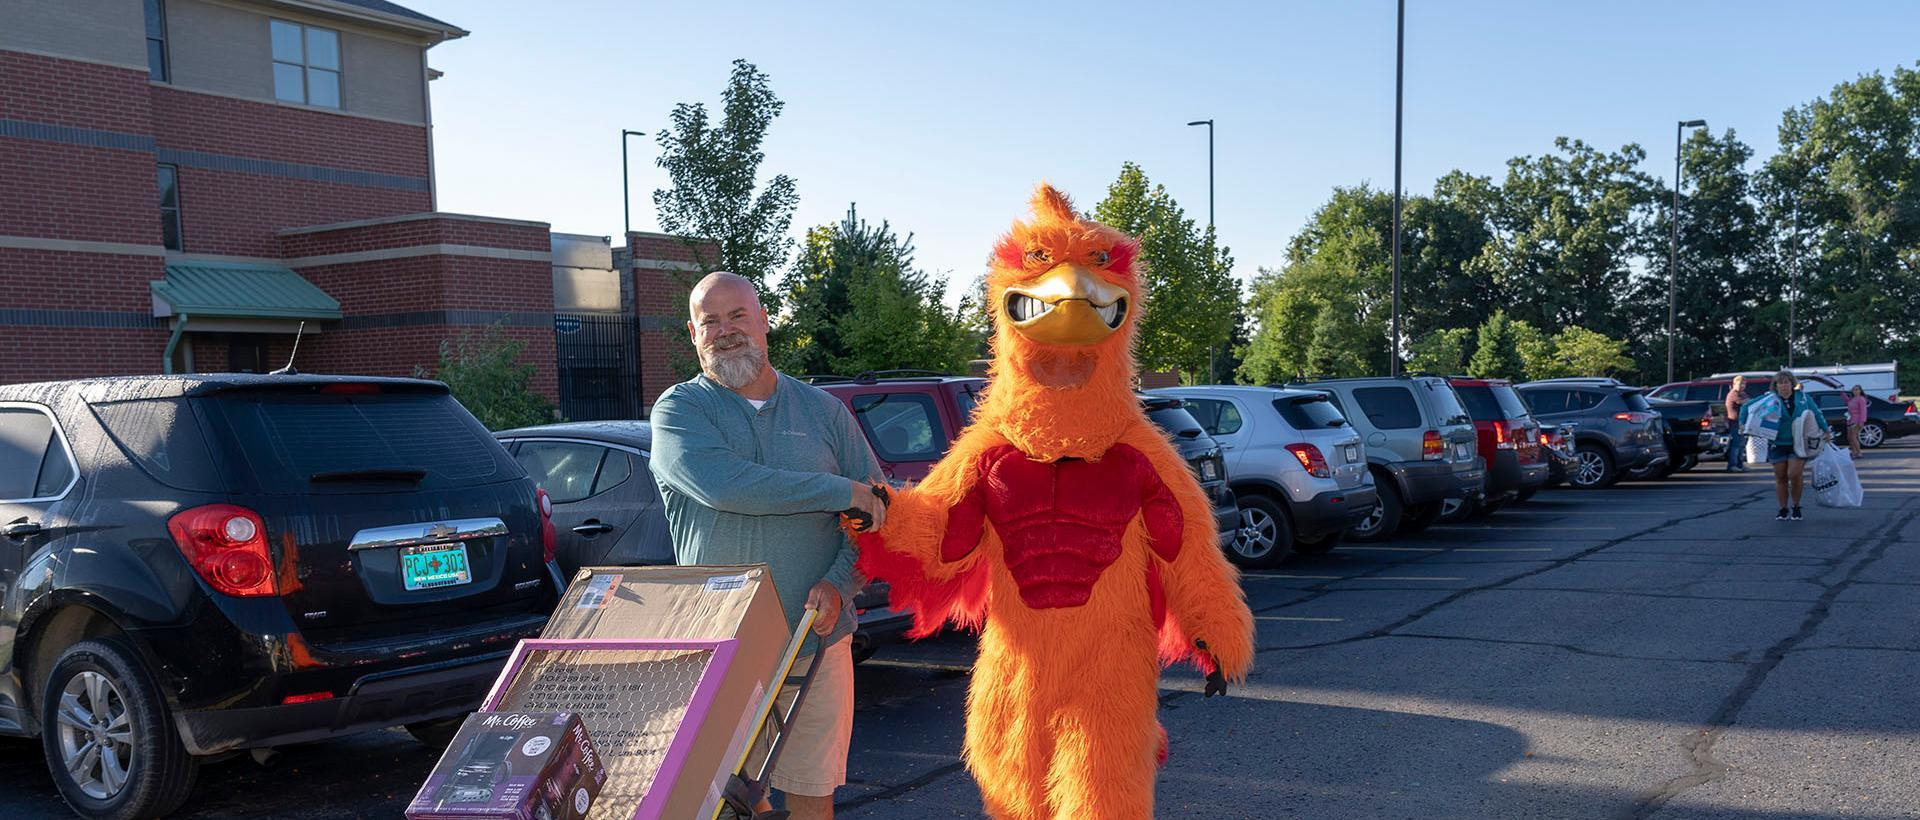 A parent shaking hands with the roadrunner mascot